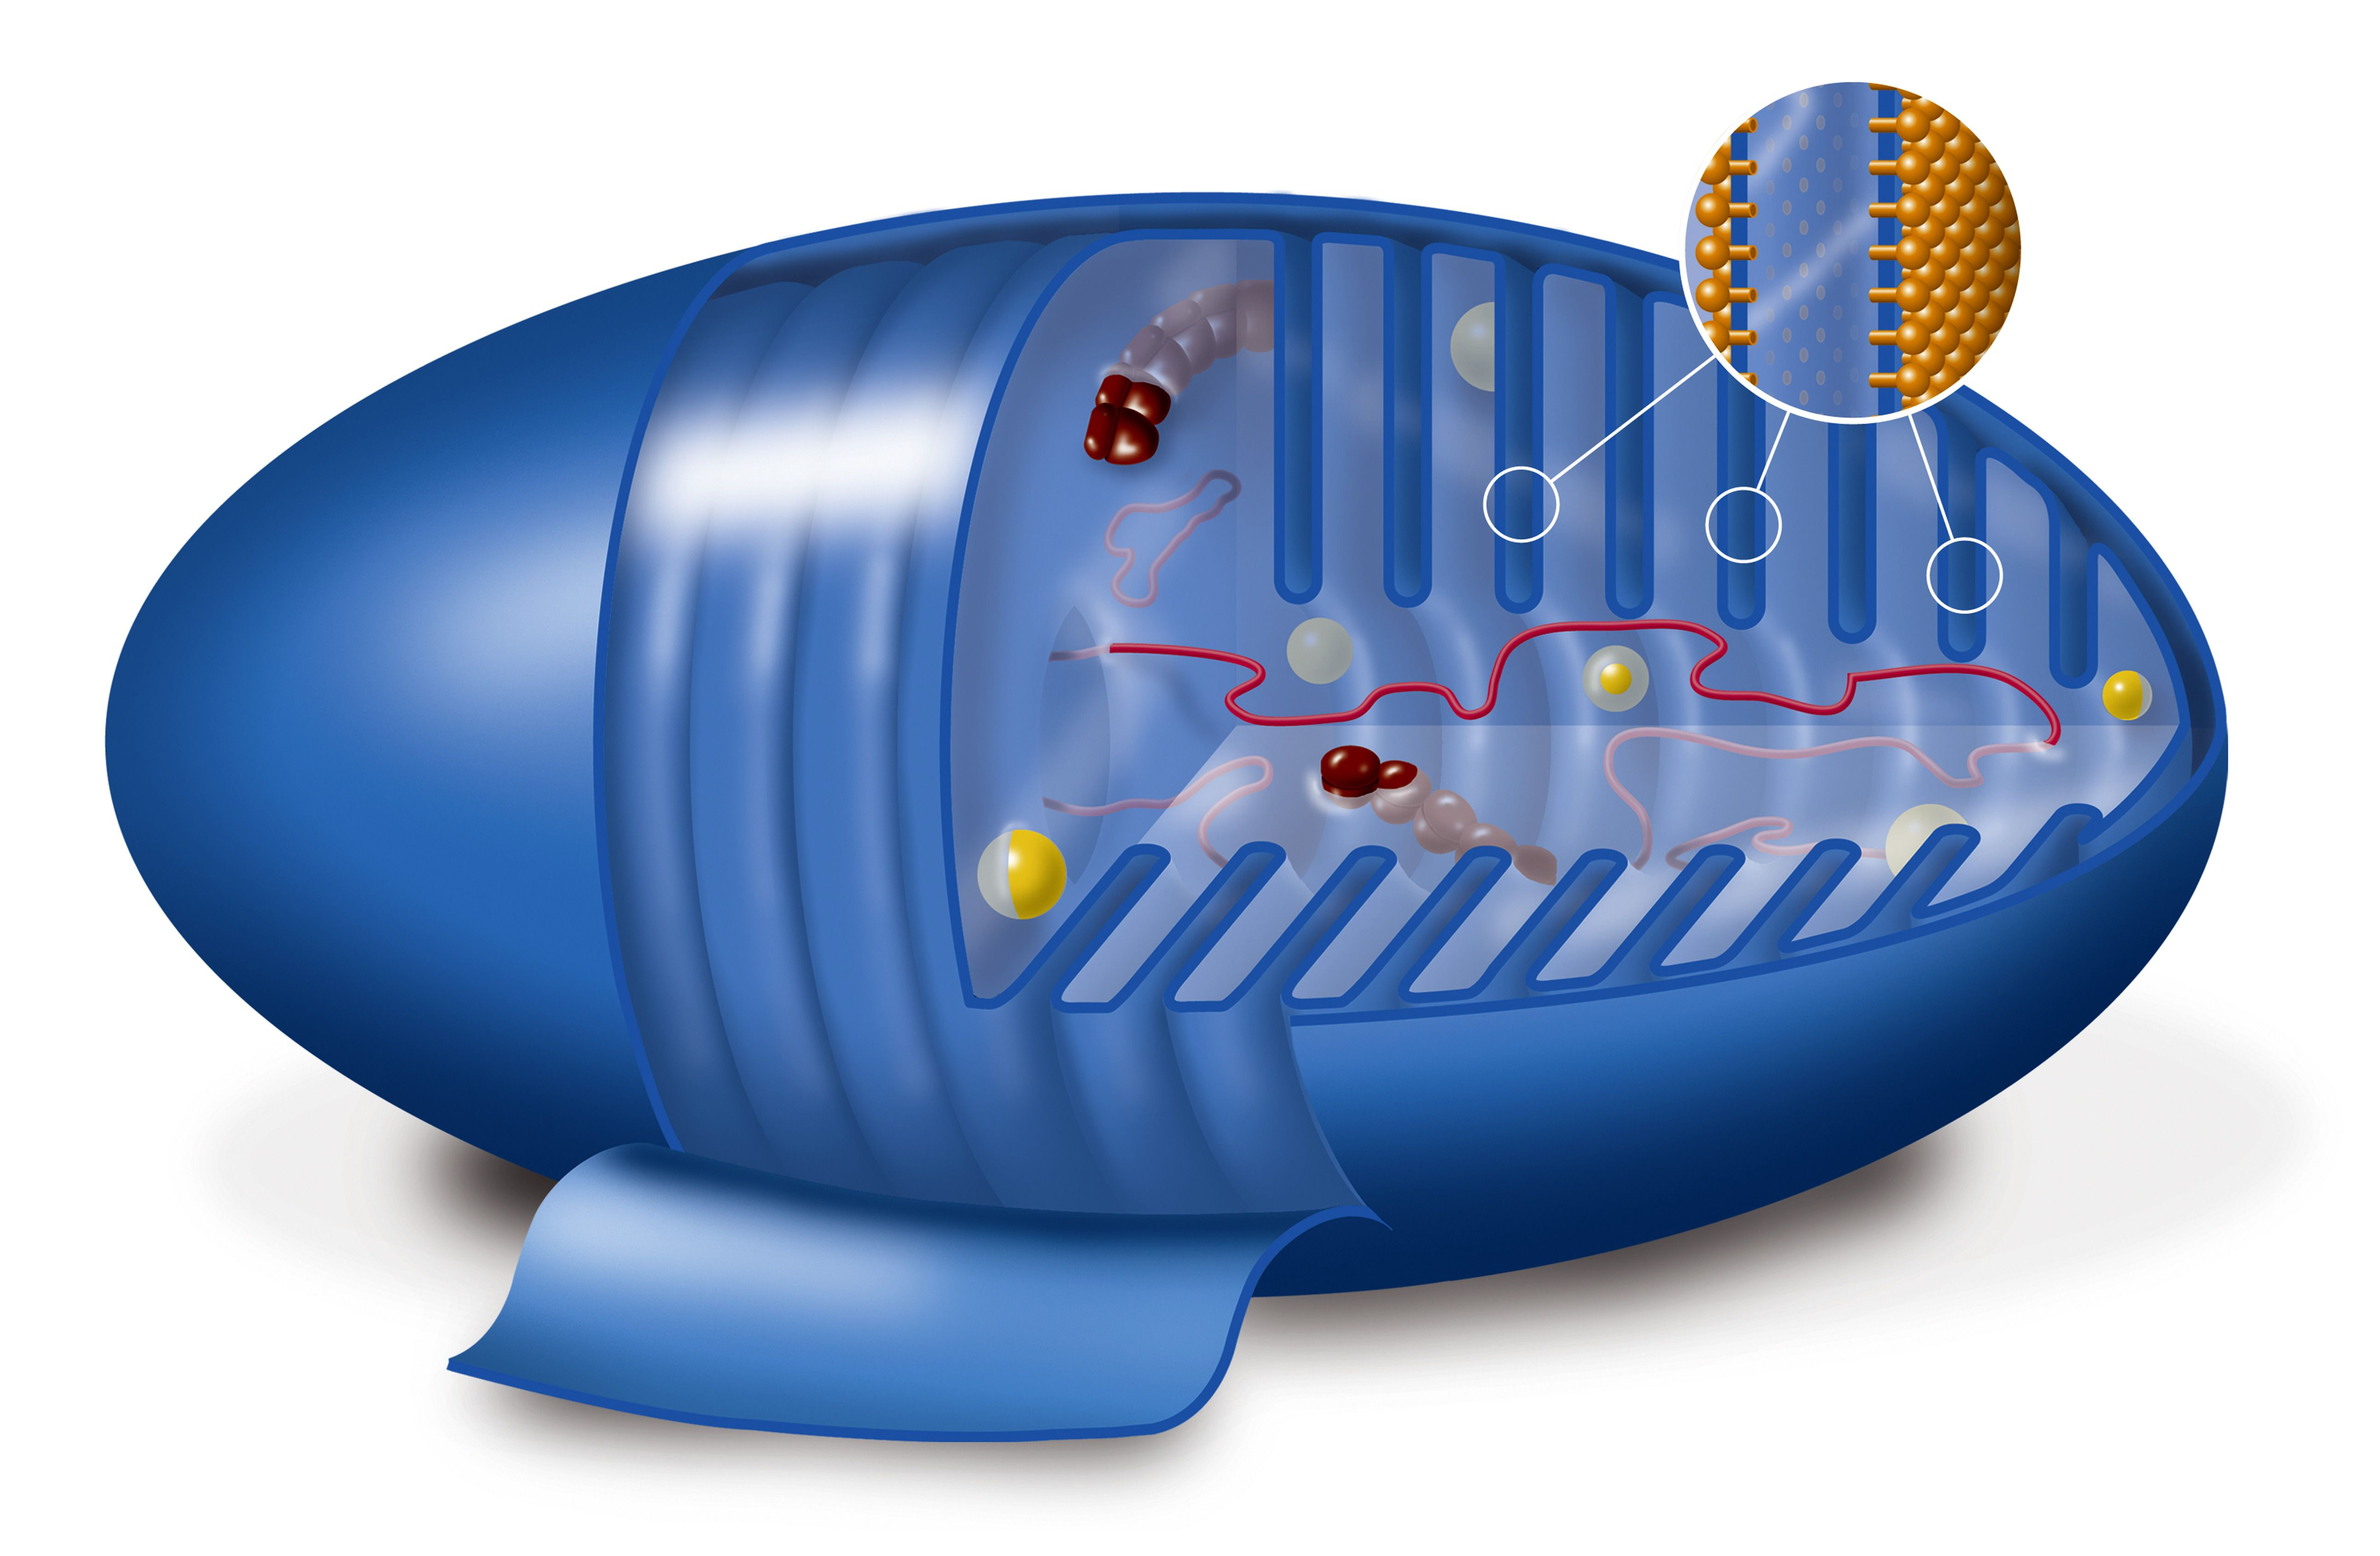 The citric acid cycle occurs in the cristae or membrane folds of mitochondria.